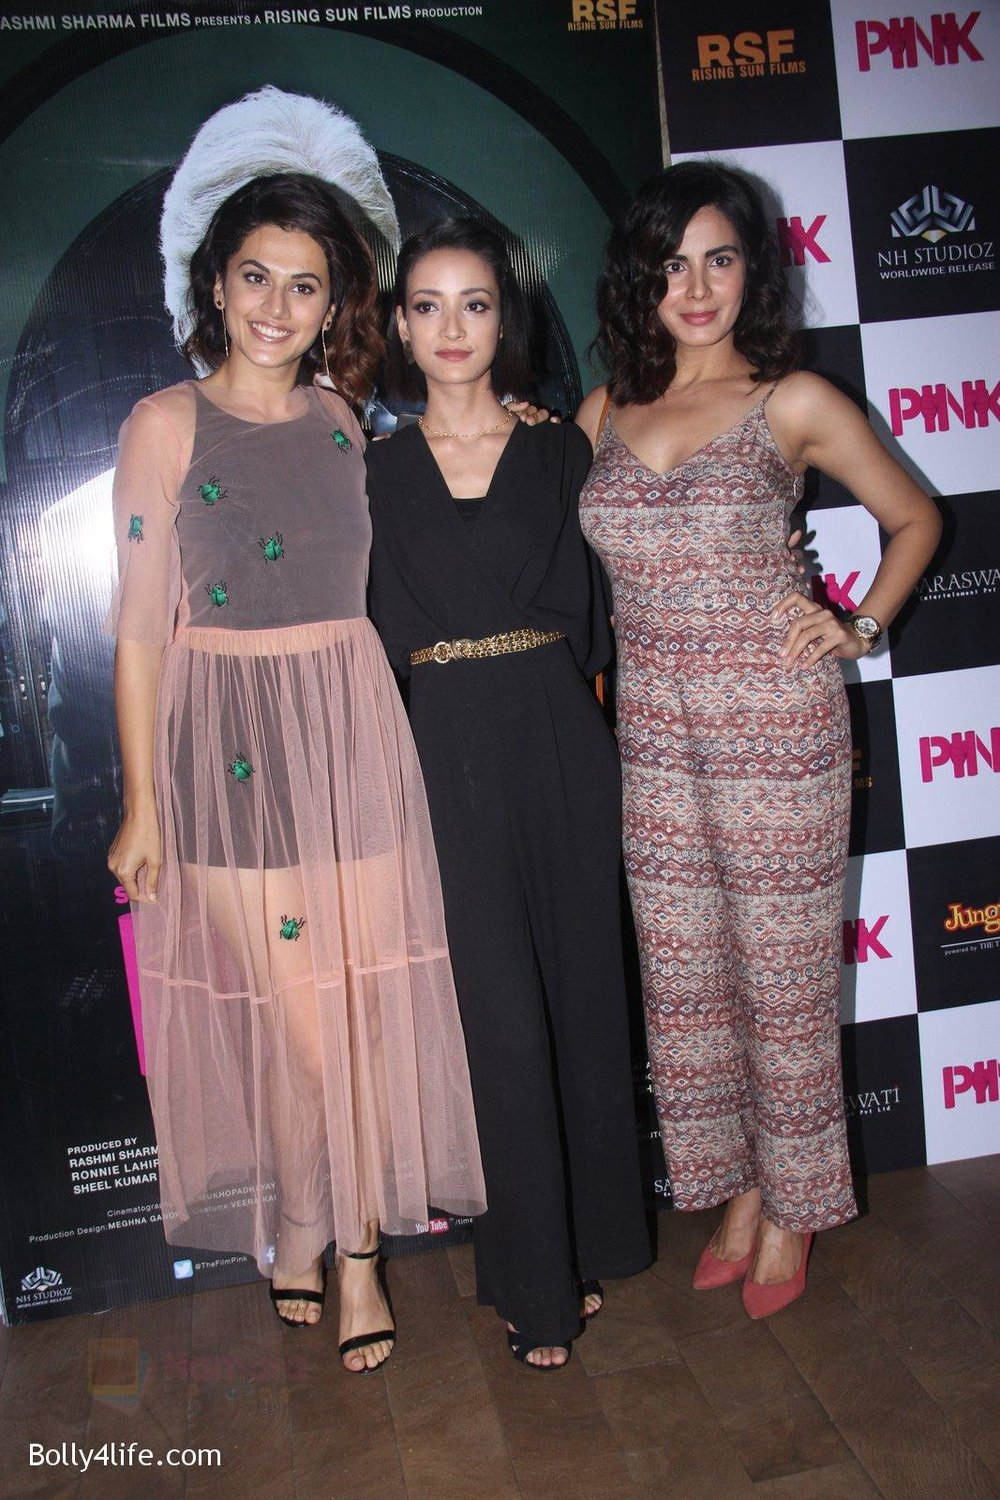 Kirti-Kulhari-Taapsee-Pannu-Andrea-Tariang-at-Pink-Screening-in-Lightbox-on-12th-Sept-2016-80.jpg